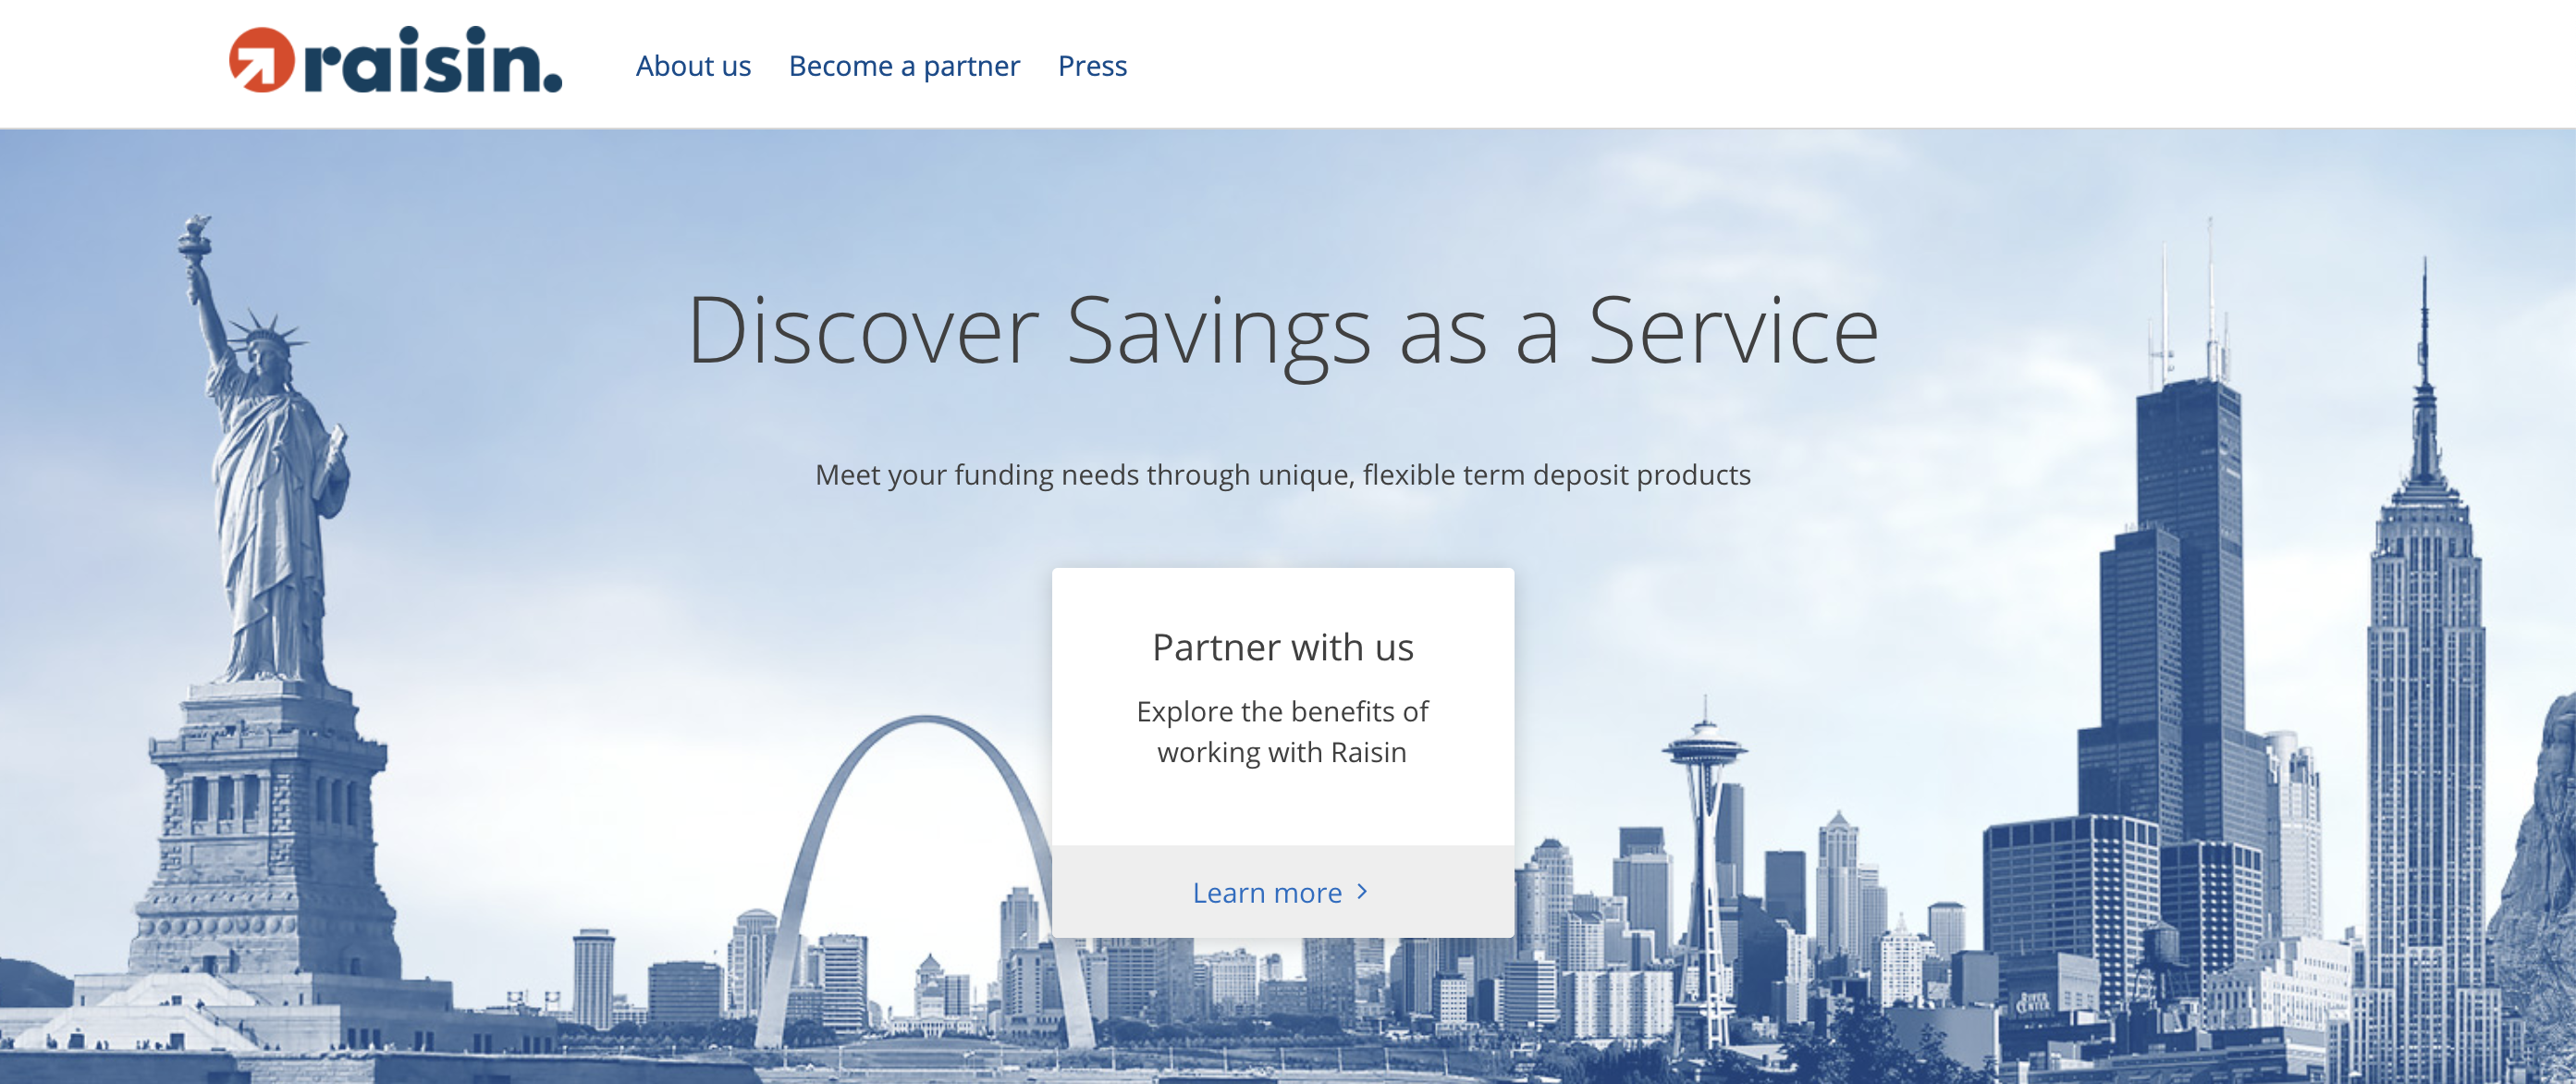 Fintech Raisin launches Savings as a Service software for U.S. banks and credit unions